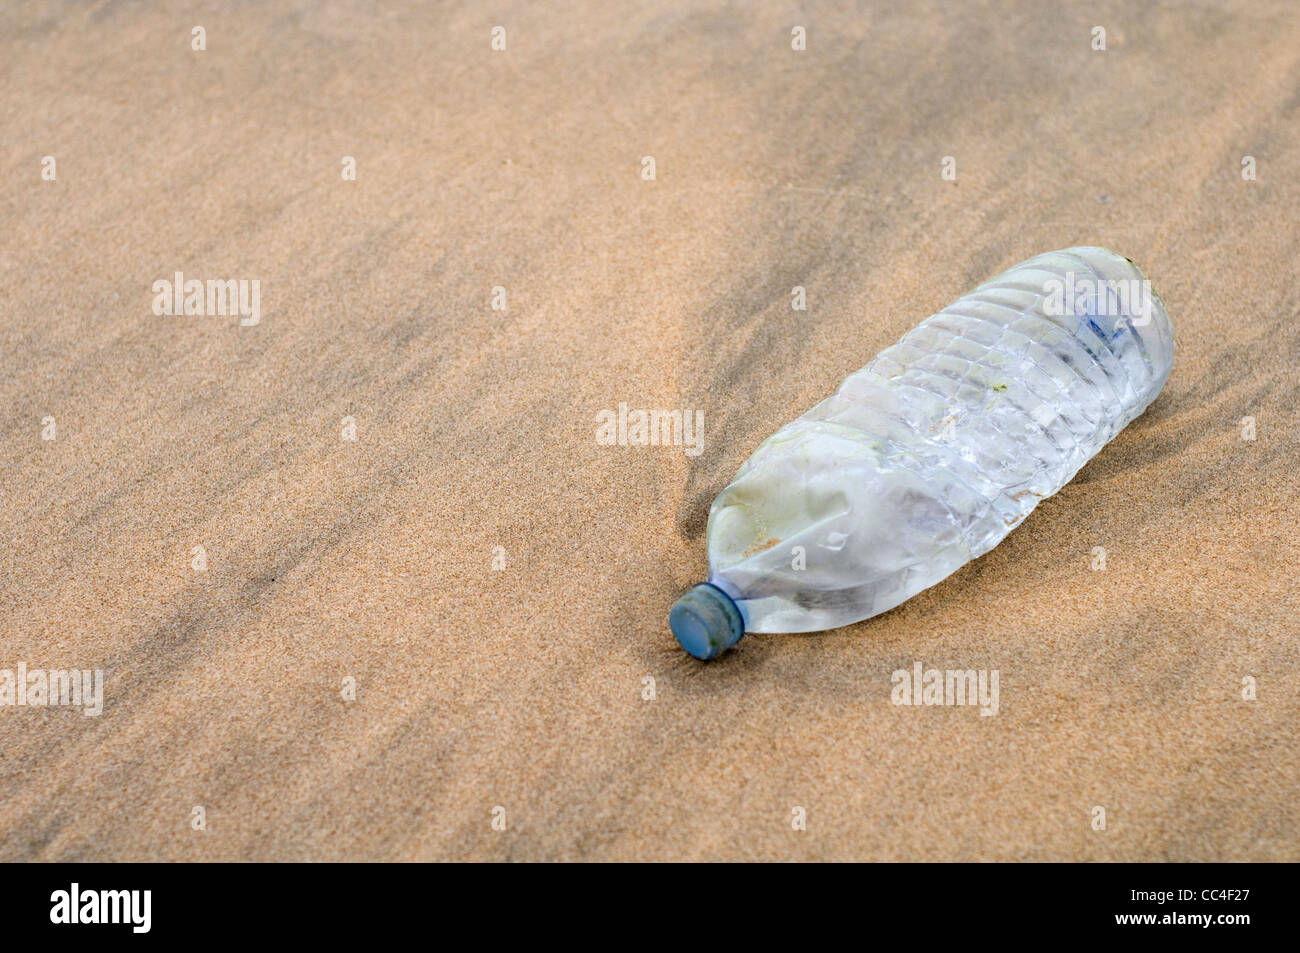 A plastic bottle polluting a sandy beach - Stock Image